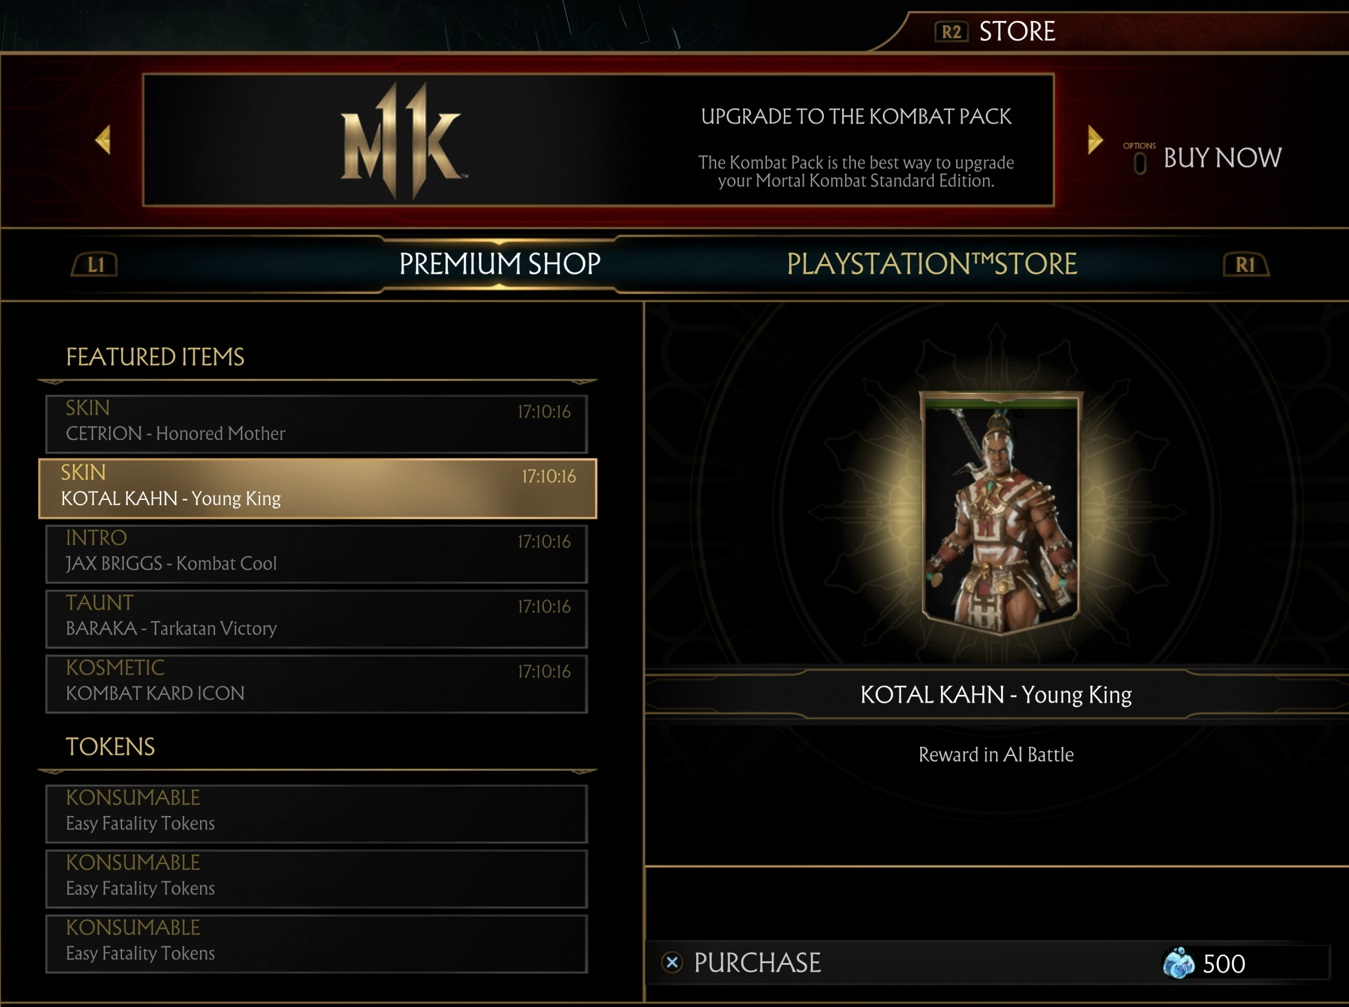 What You Need to Know About Mortal Kombat 11's Premium Shop